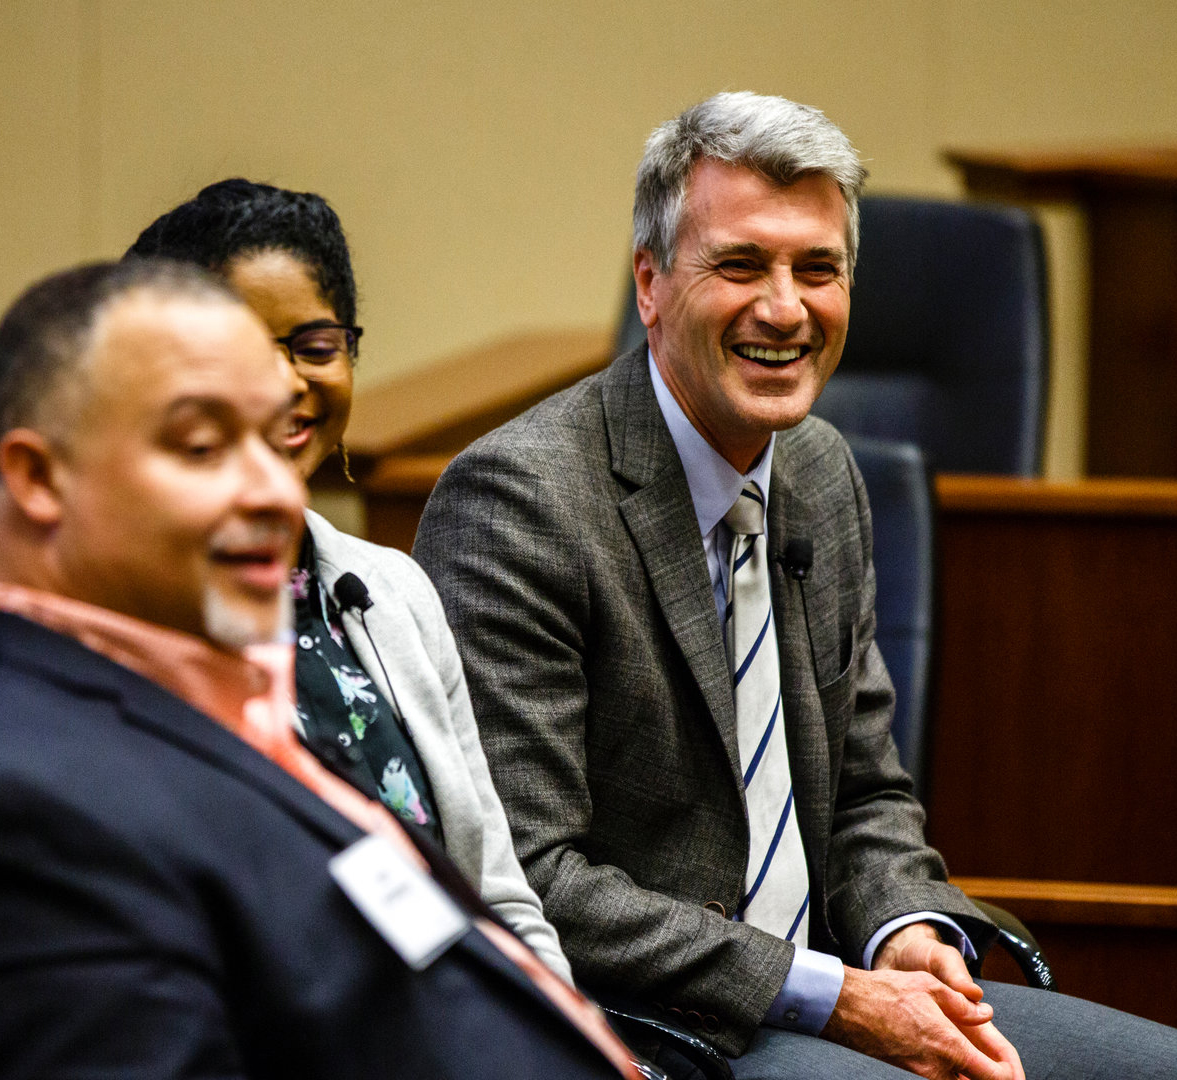 R.T. Rybak on a panel in the Schulze Hall auditorium